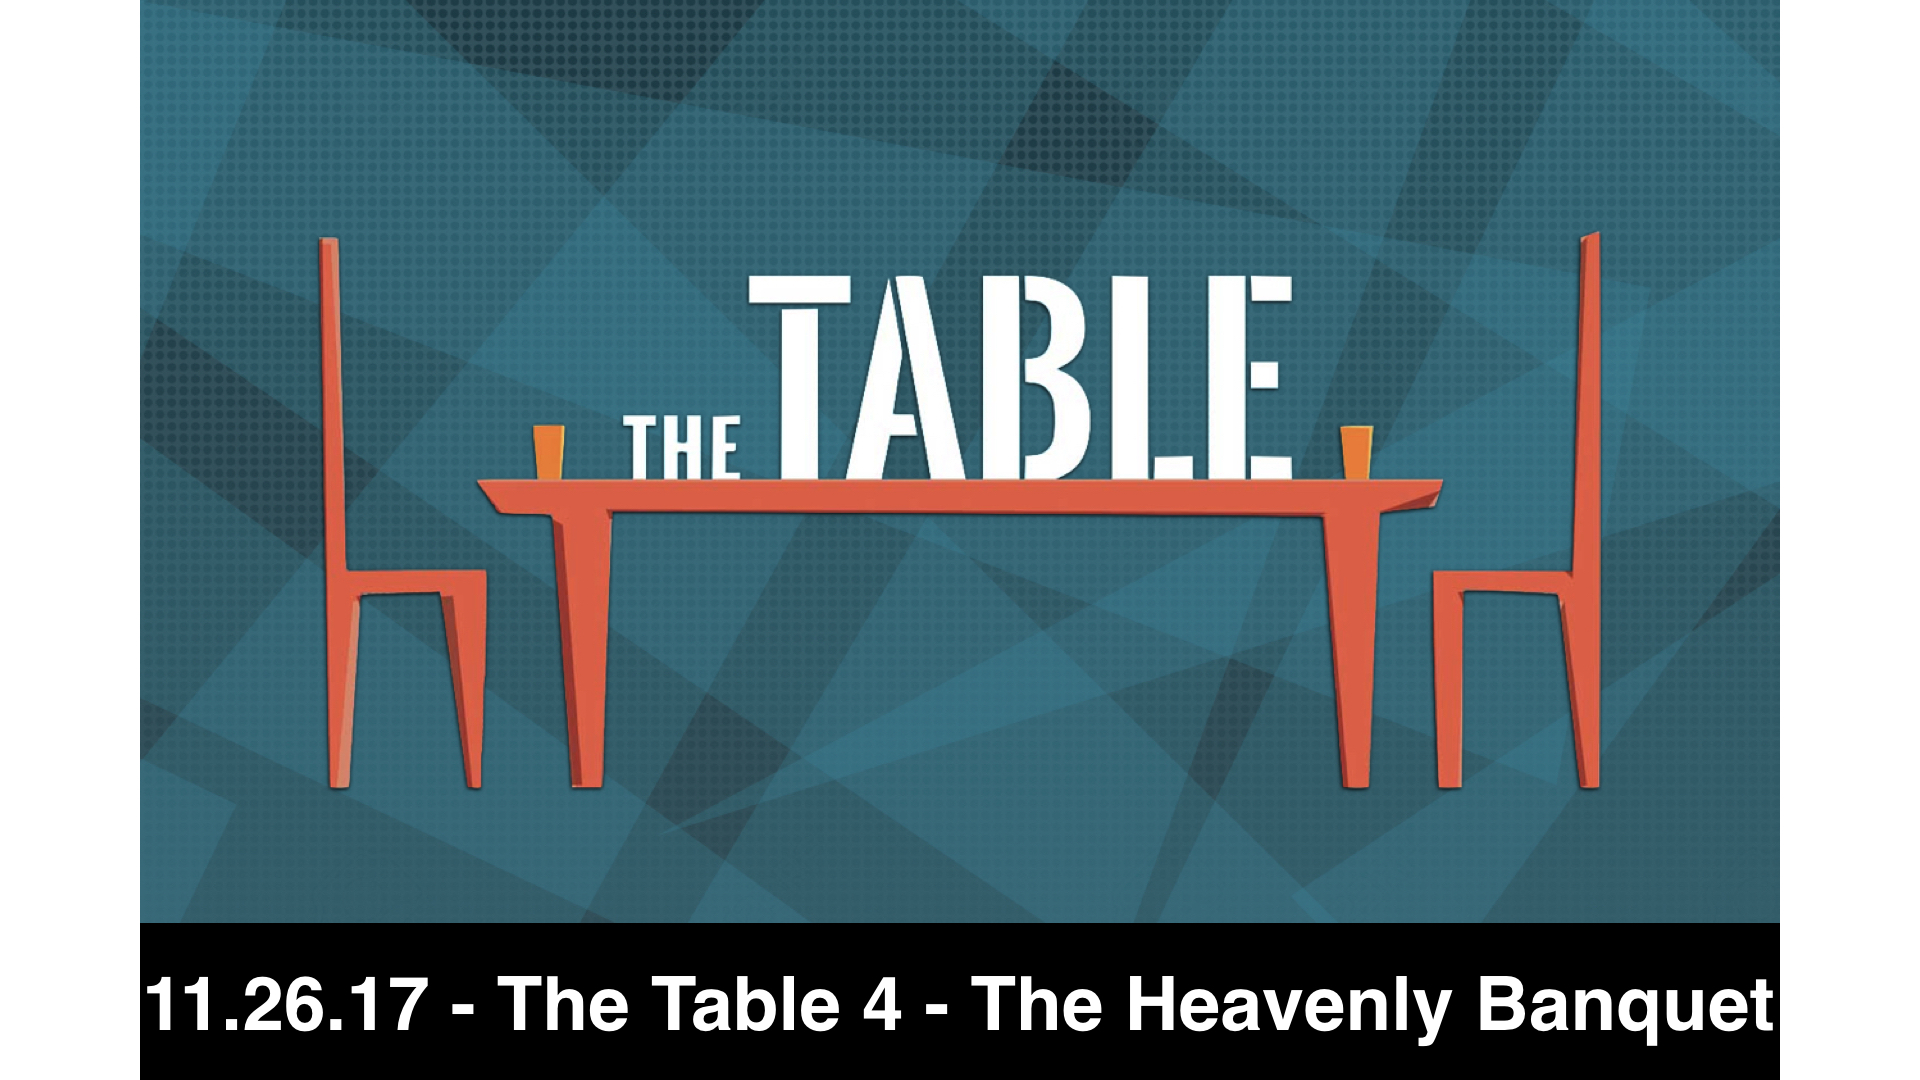 11.26.17 - The Table 3 - The Heavenly Banquet